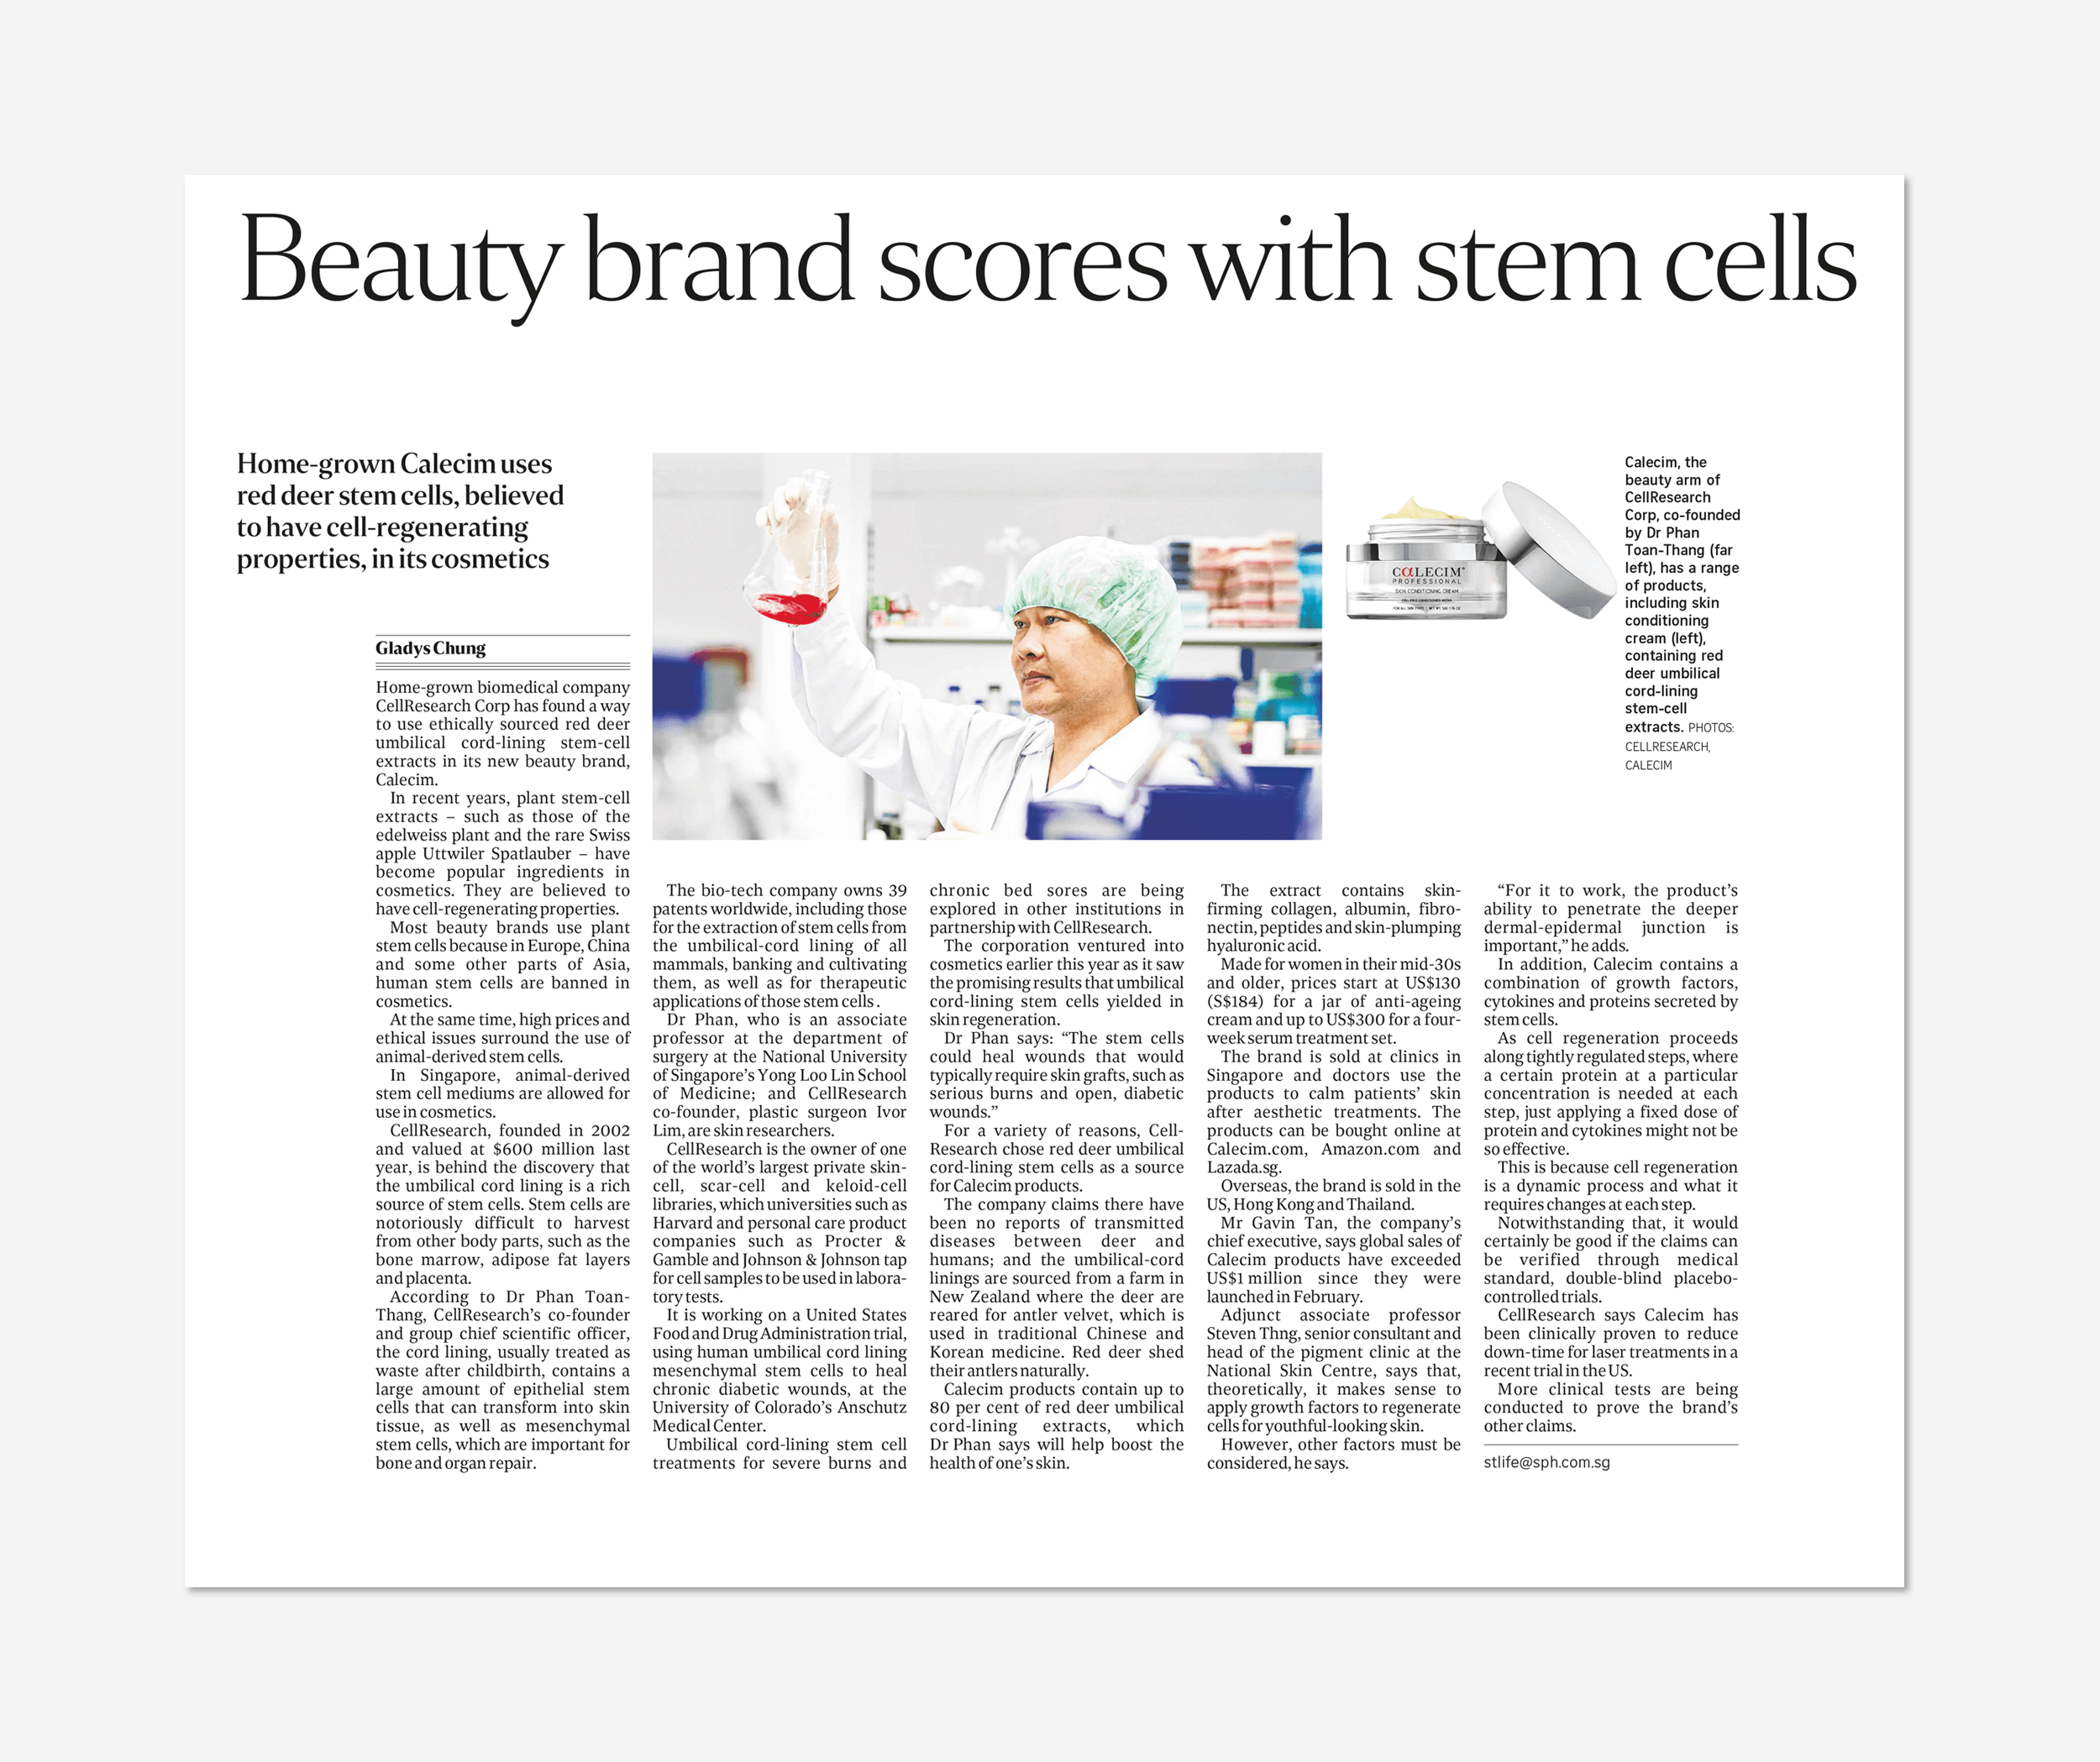 beauty-brand-scores-with-stem-cells